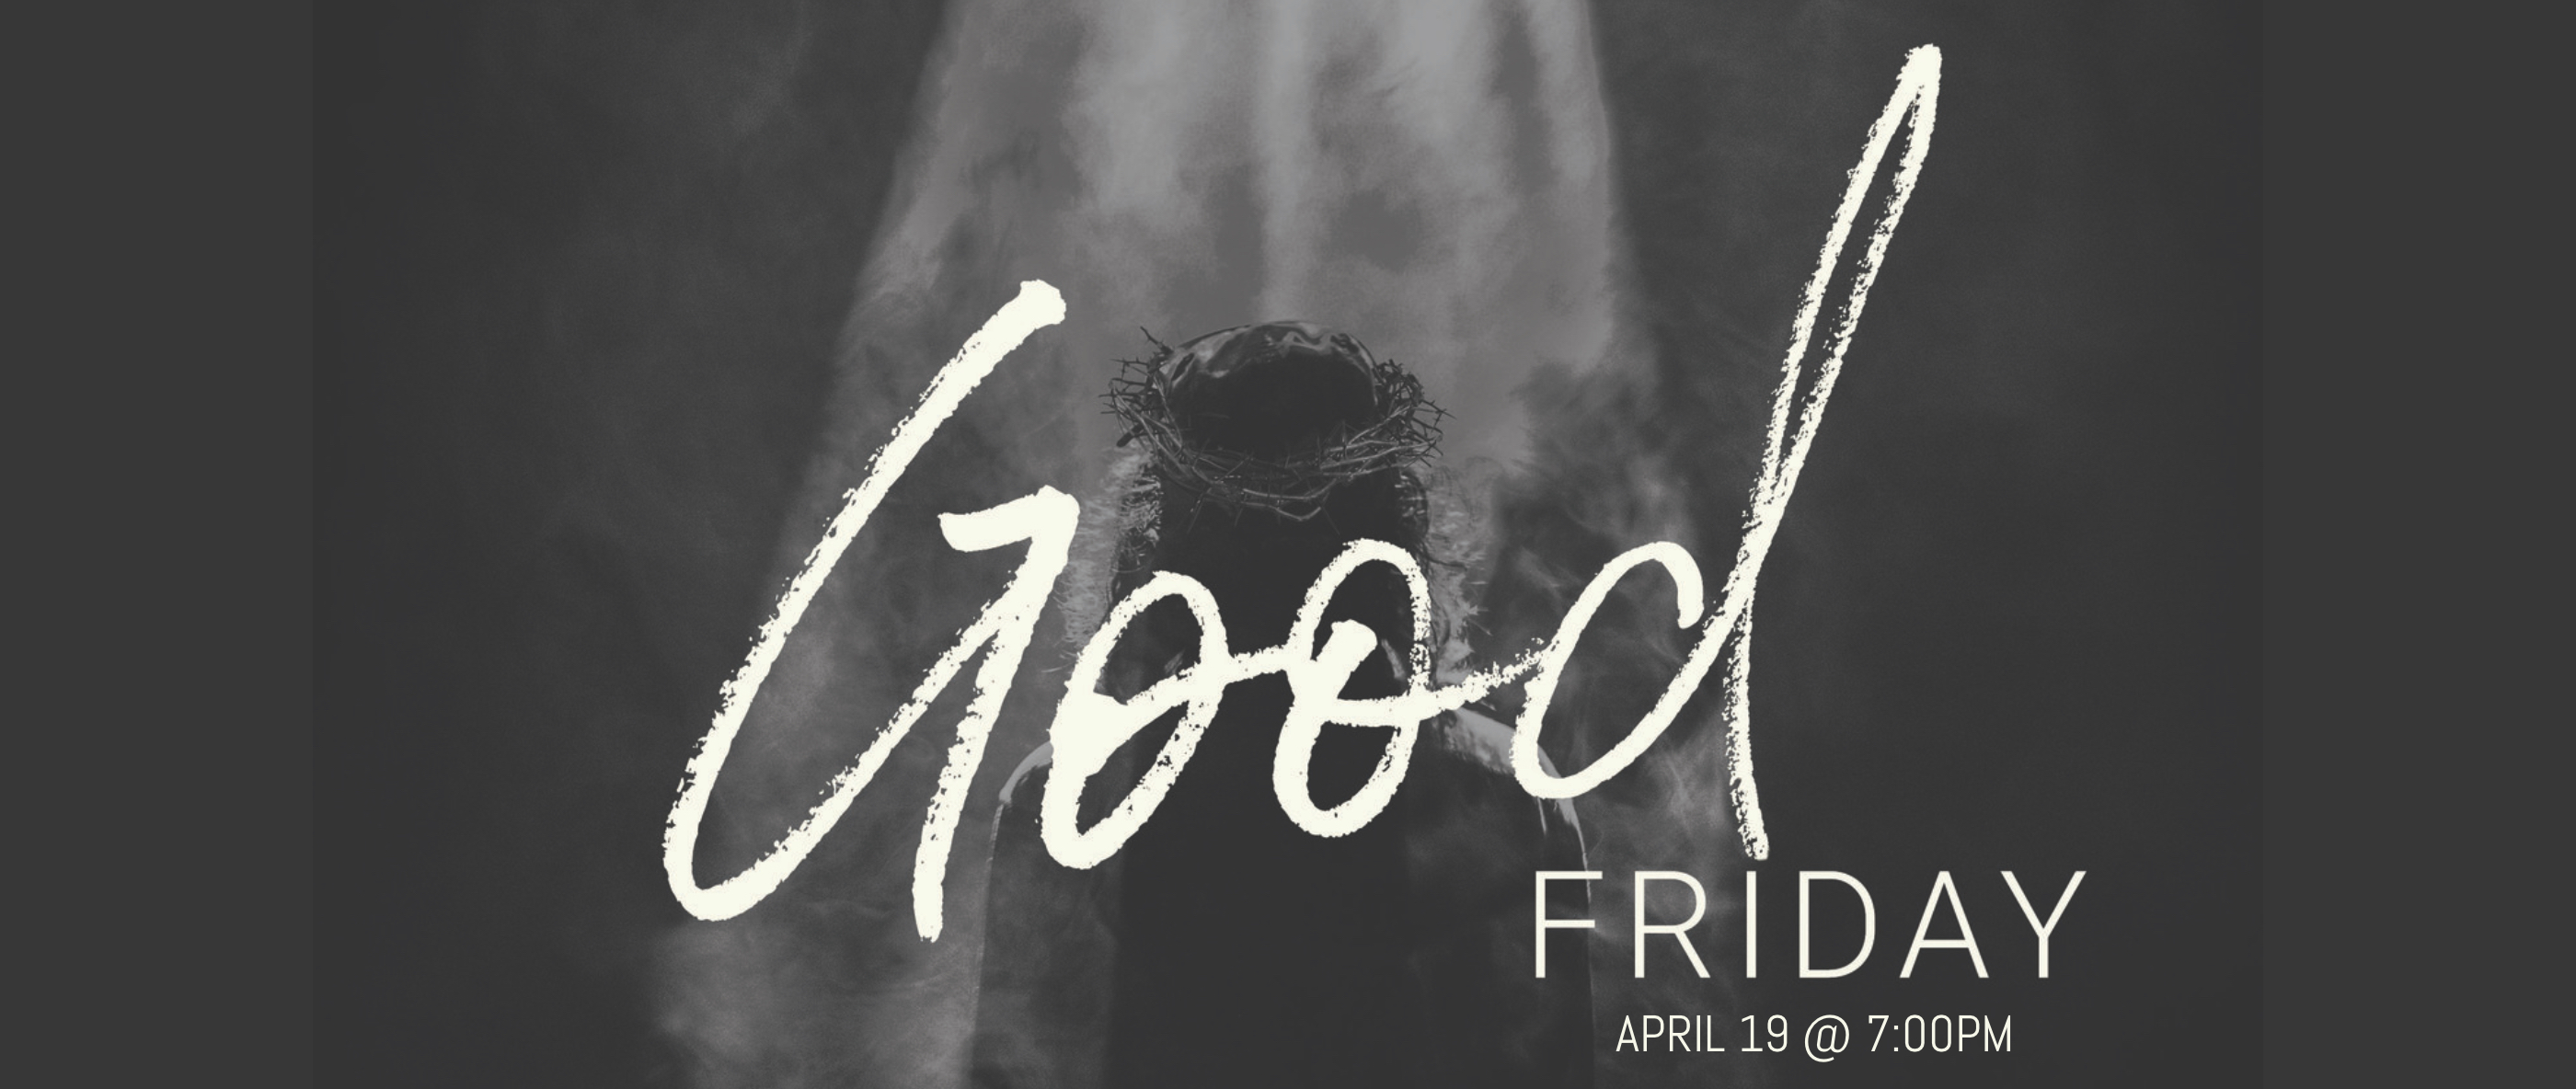 Good Friday 2019 B